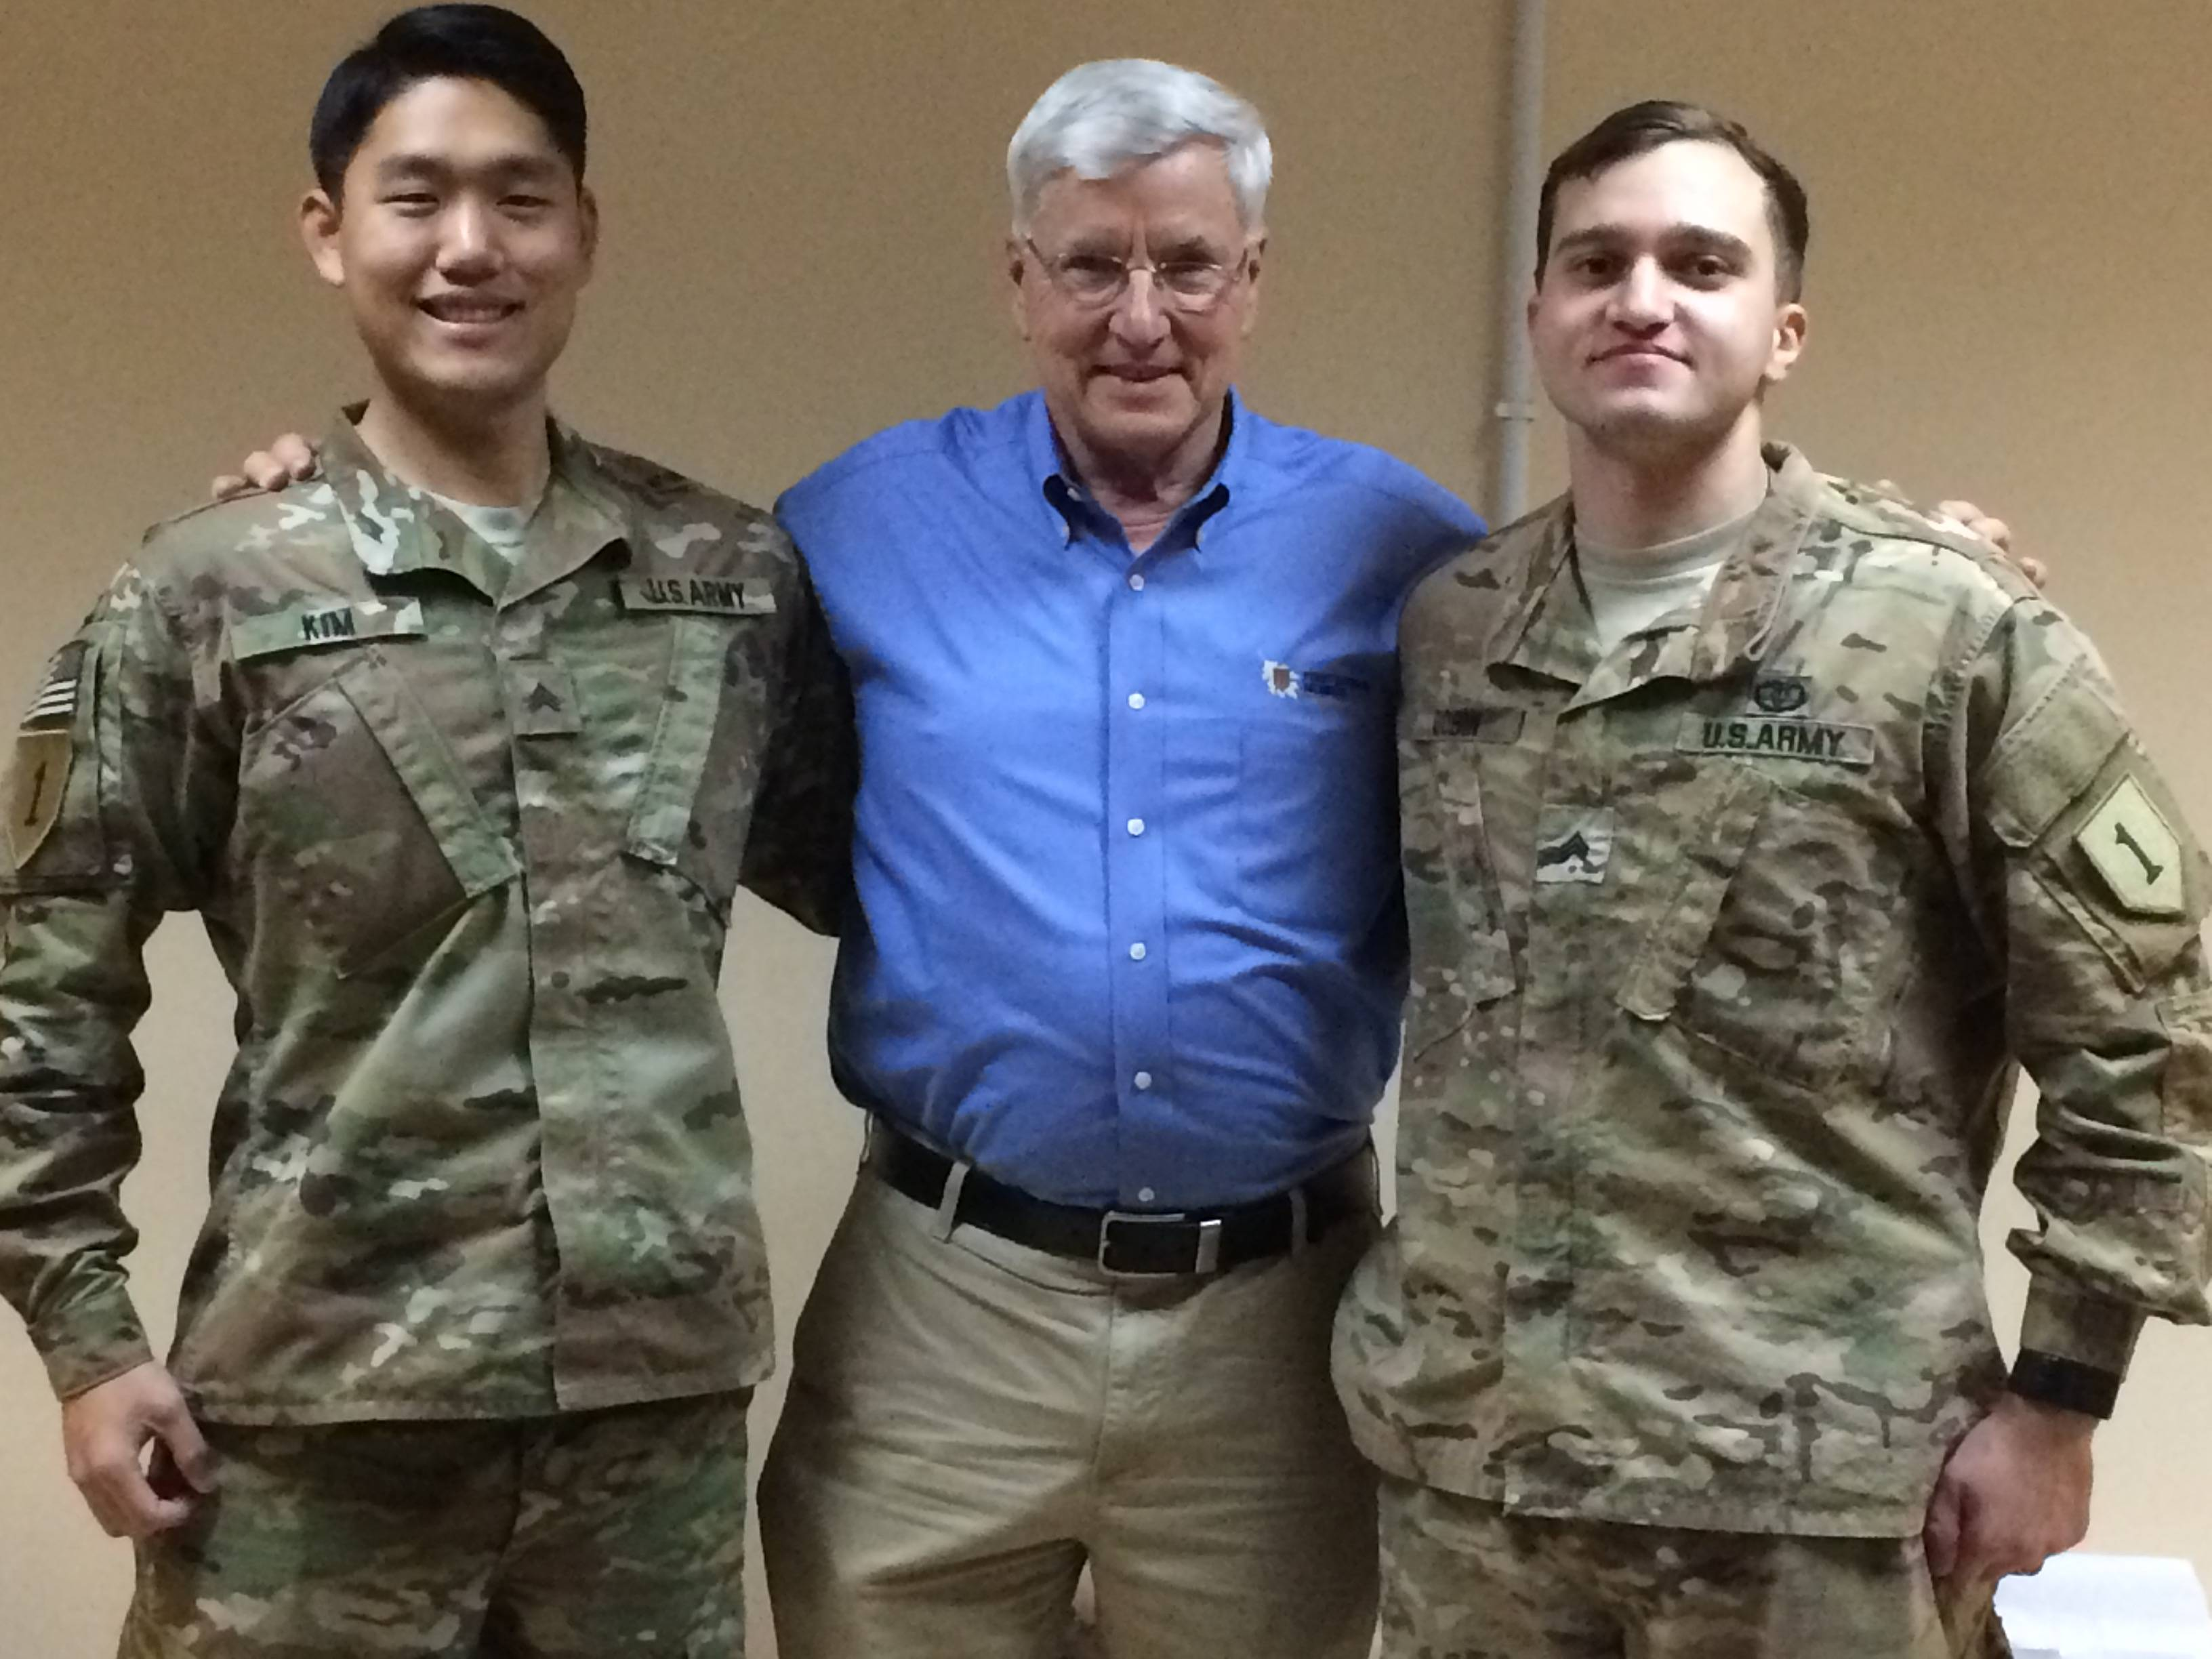 On his trip to Iraq, First Division Museum Director Paul Herbert met with Sgts. Christian Kim, left, of Deerfield and Vladislov Dobin of Lake Zurich.